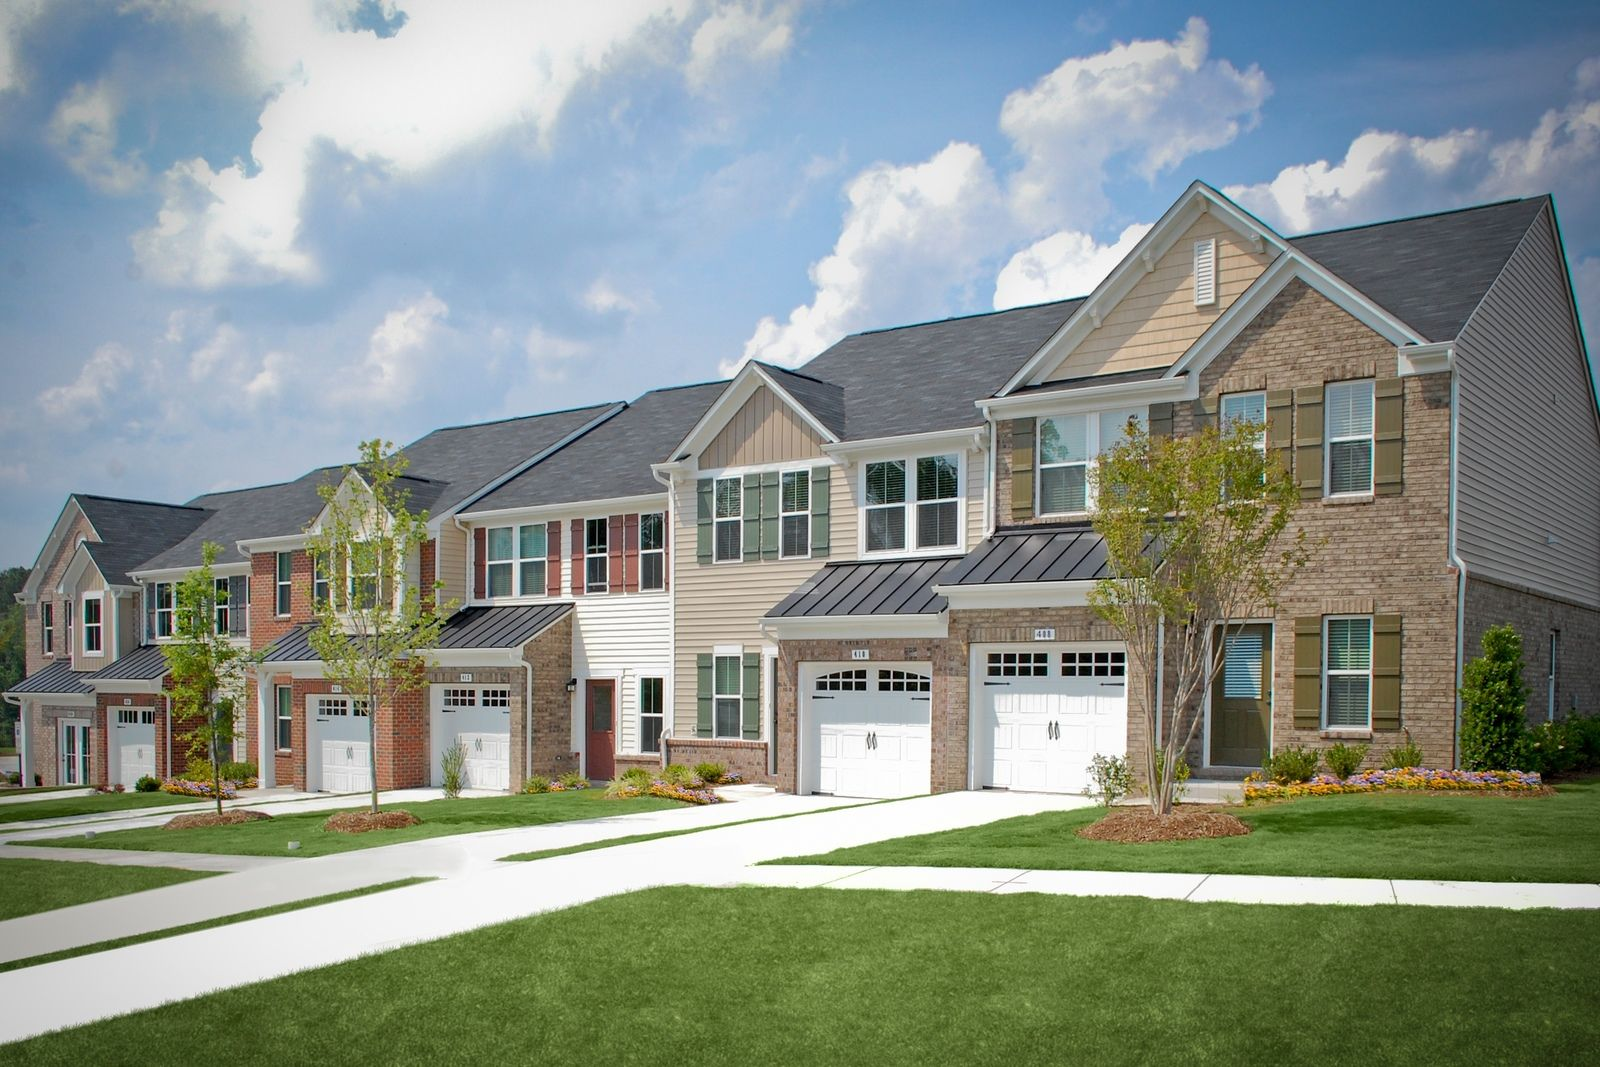 Welcome to The Preserve at Deep Creek:The only two-story luxury townhomes in a low-maintenance community with pool and clubhouse in the Appoquinimink School District.Schedule your appointment today.